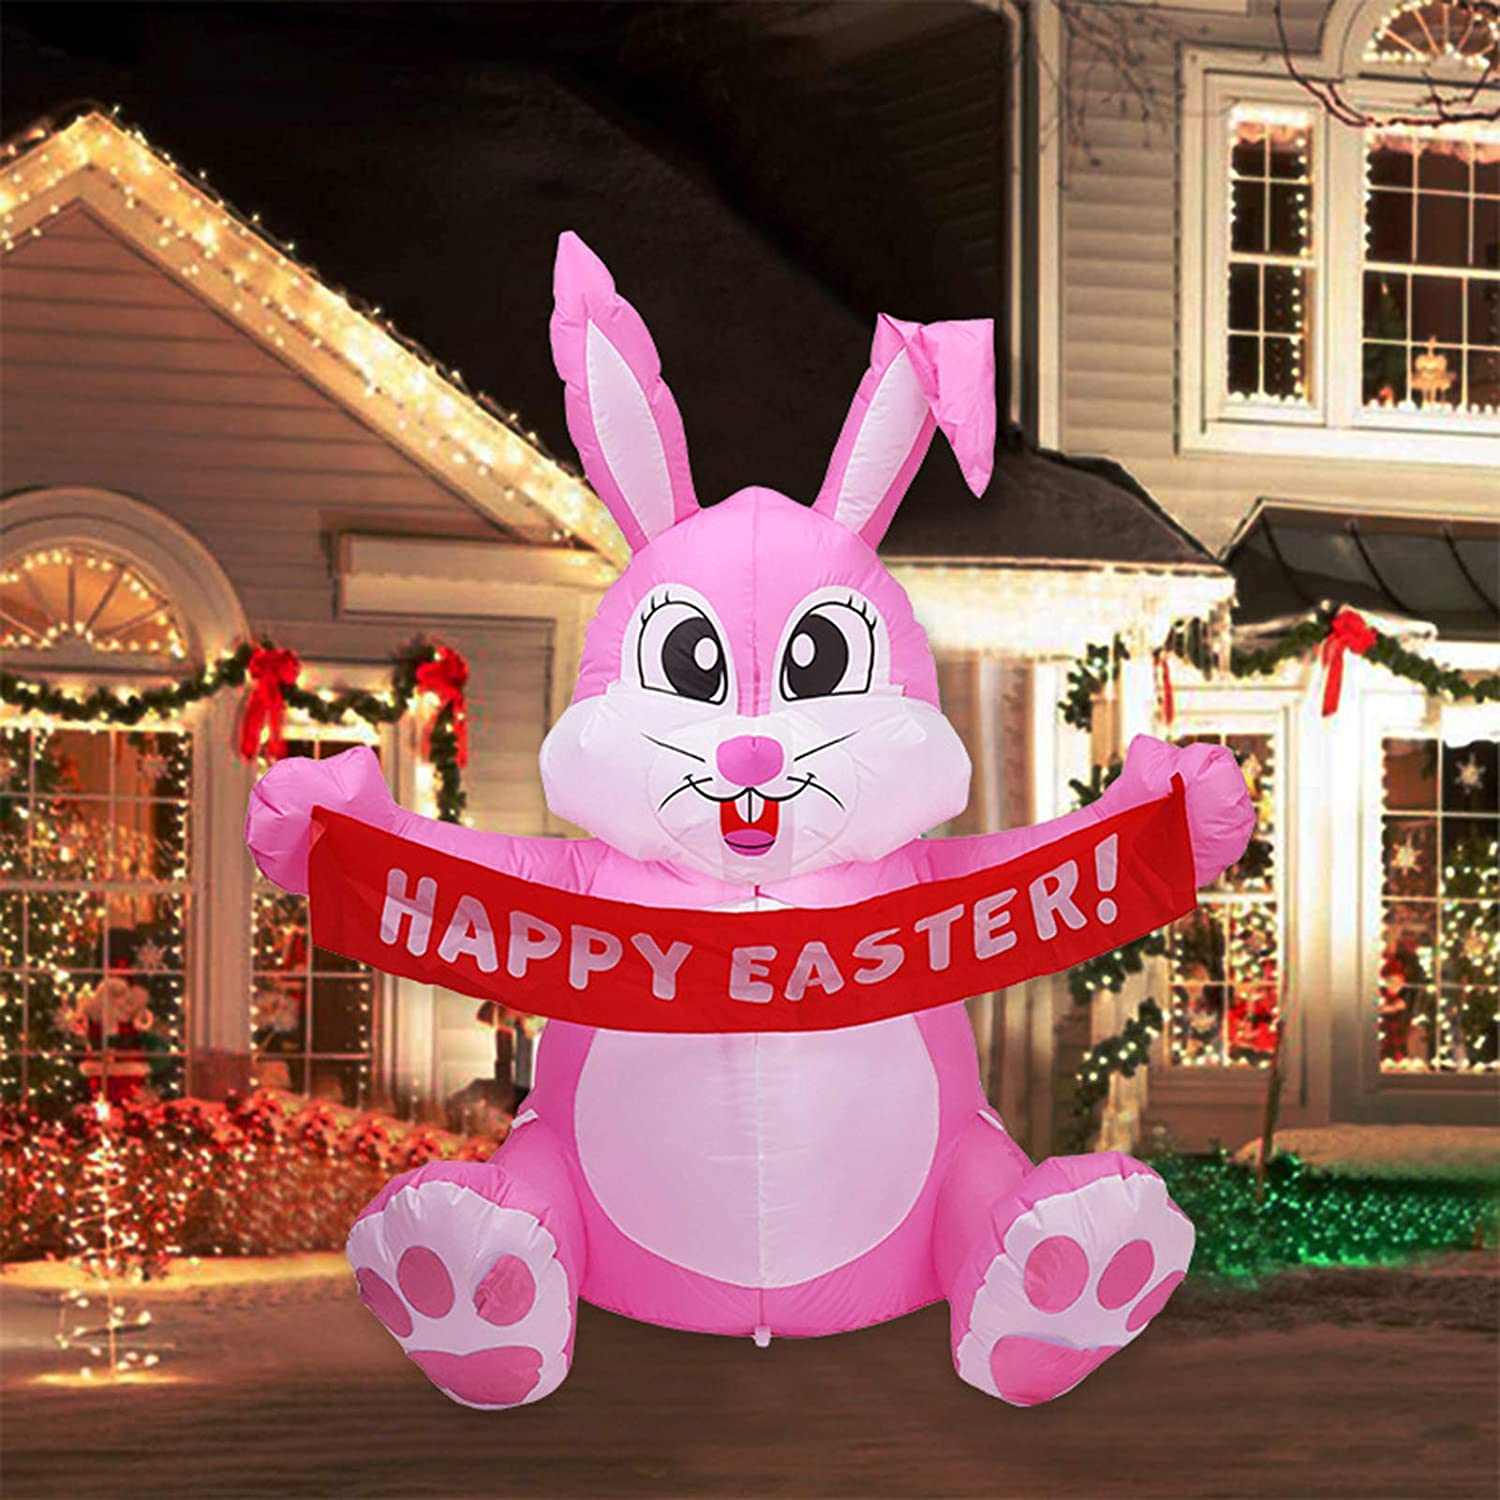 MEJORMEN 5 FT Easter Inflatable Decor Pinky Bunny Outdoor Ranking TOP11 Spasm price